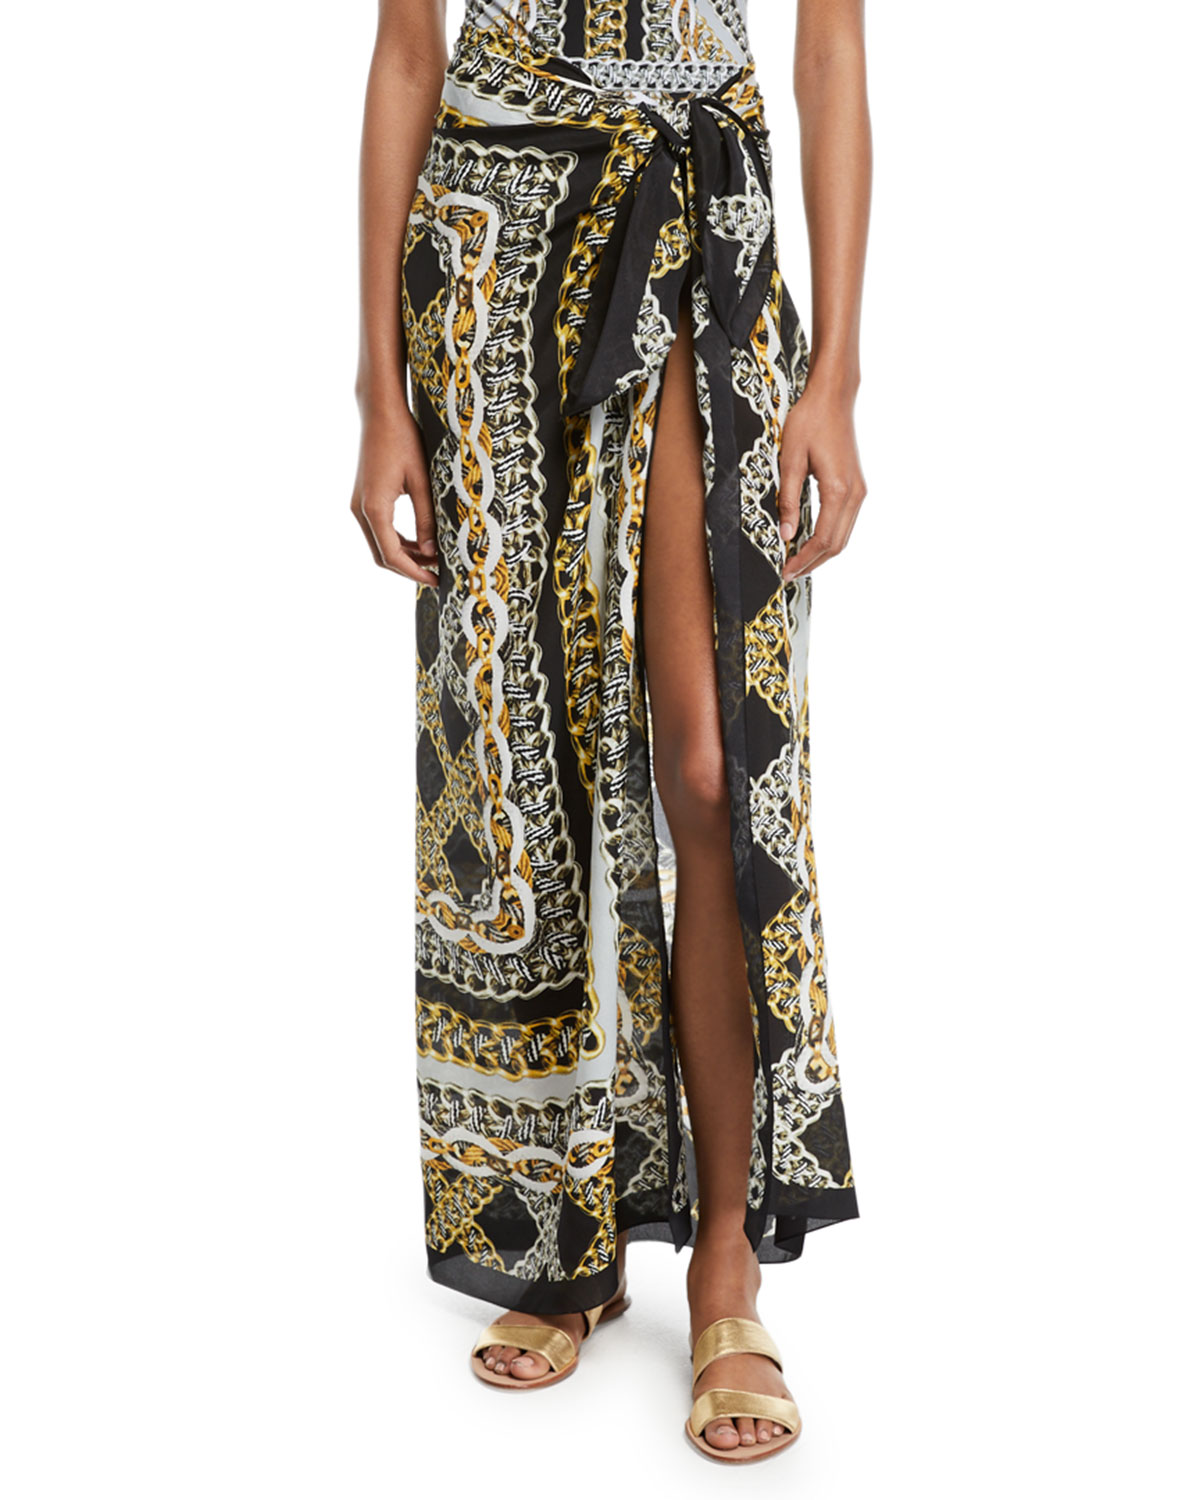 GOTTEX Chains Of Gold Printed Coverup Pareo in Black